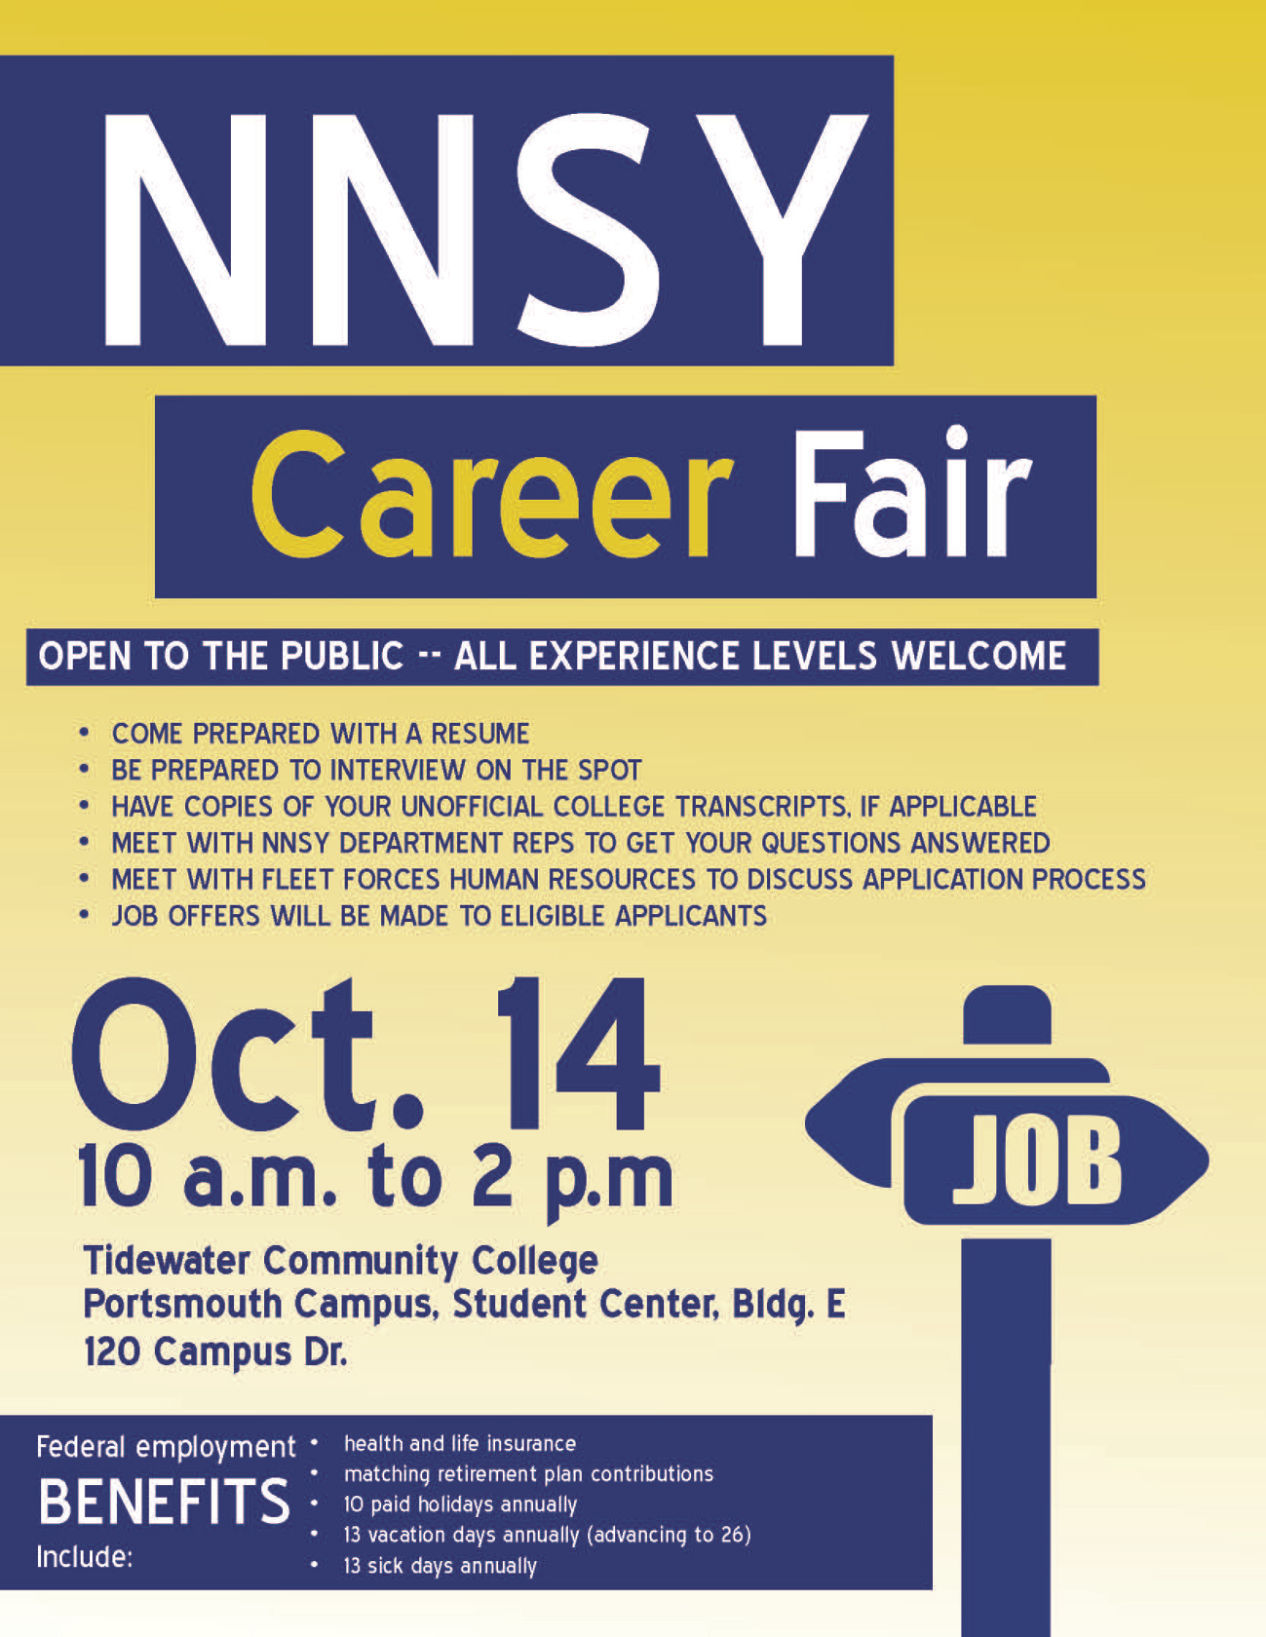 Norfolk Naval Shipyard To Hold Career Fair At Tcc Portsmouth Top